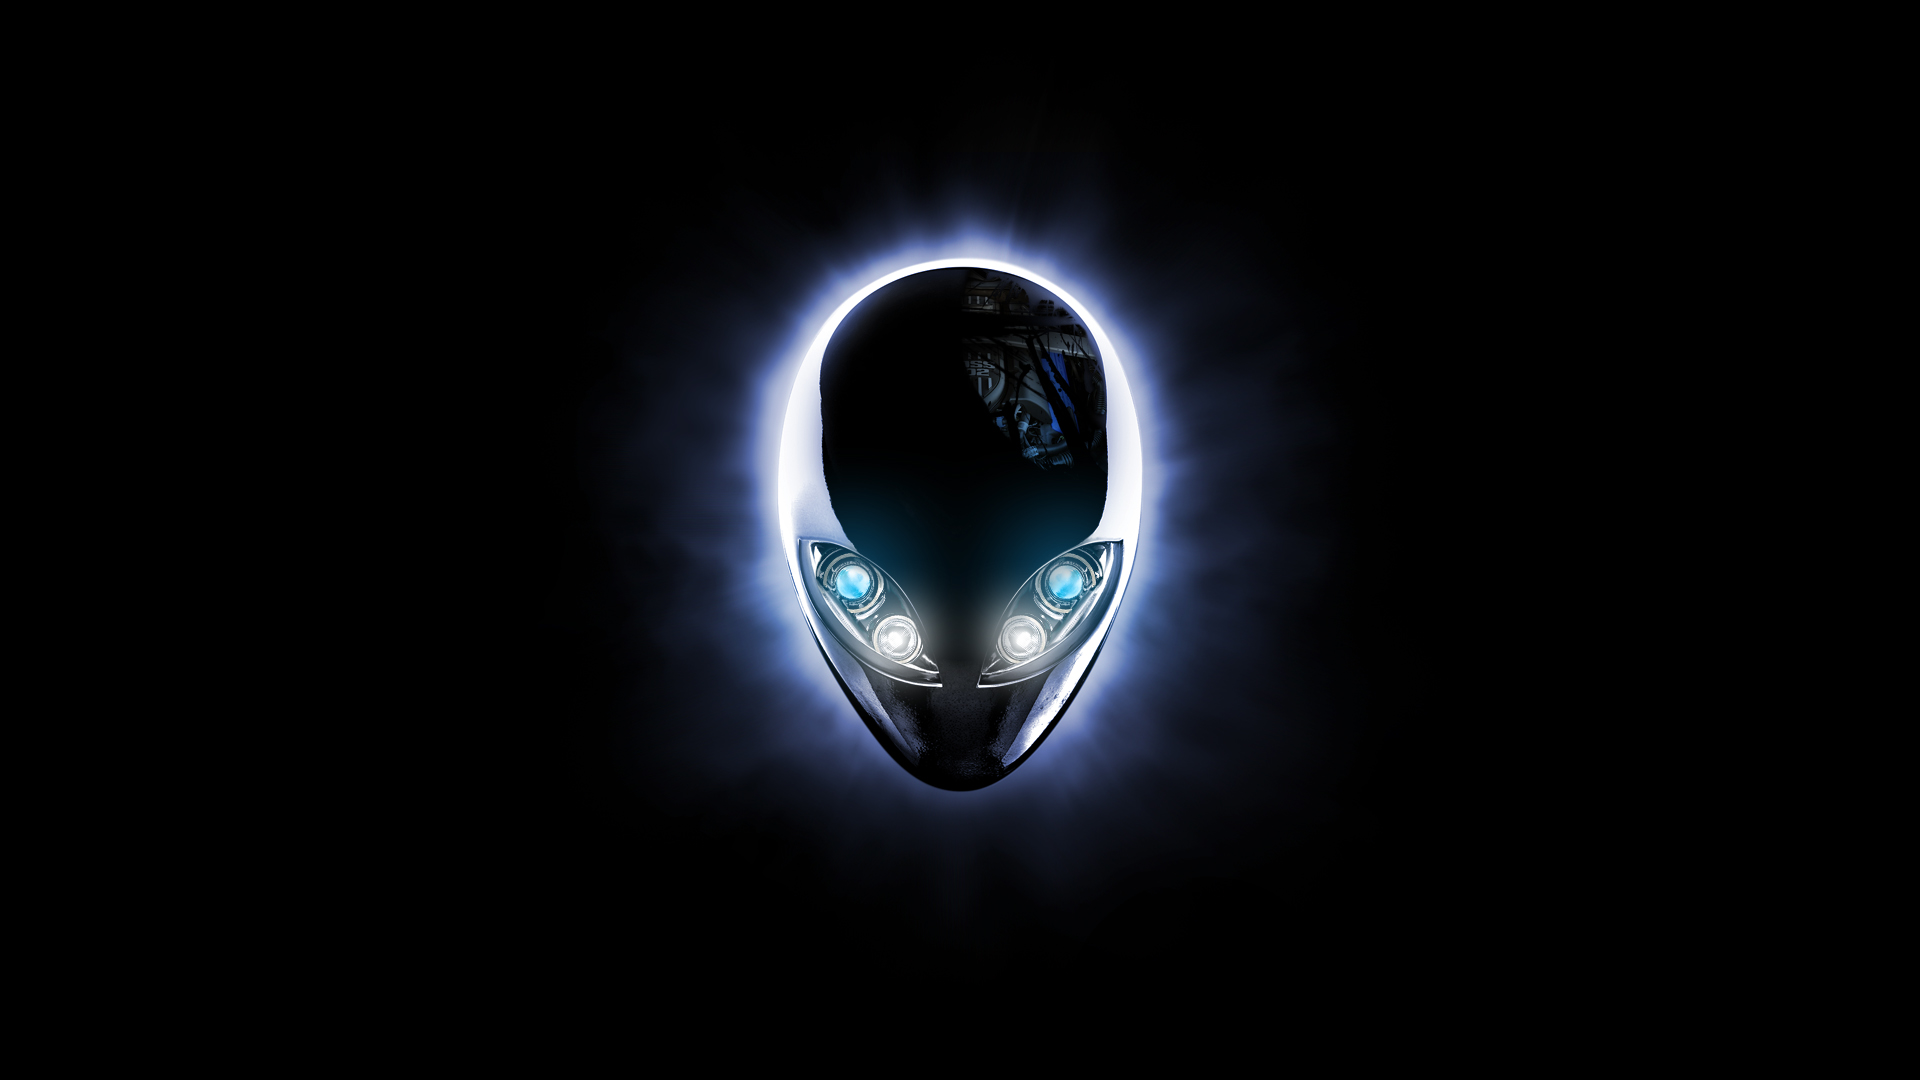 Alienware wallpapers for windows 7 wallpapersafari - Alienware Wallpaper 4294